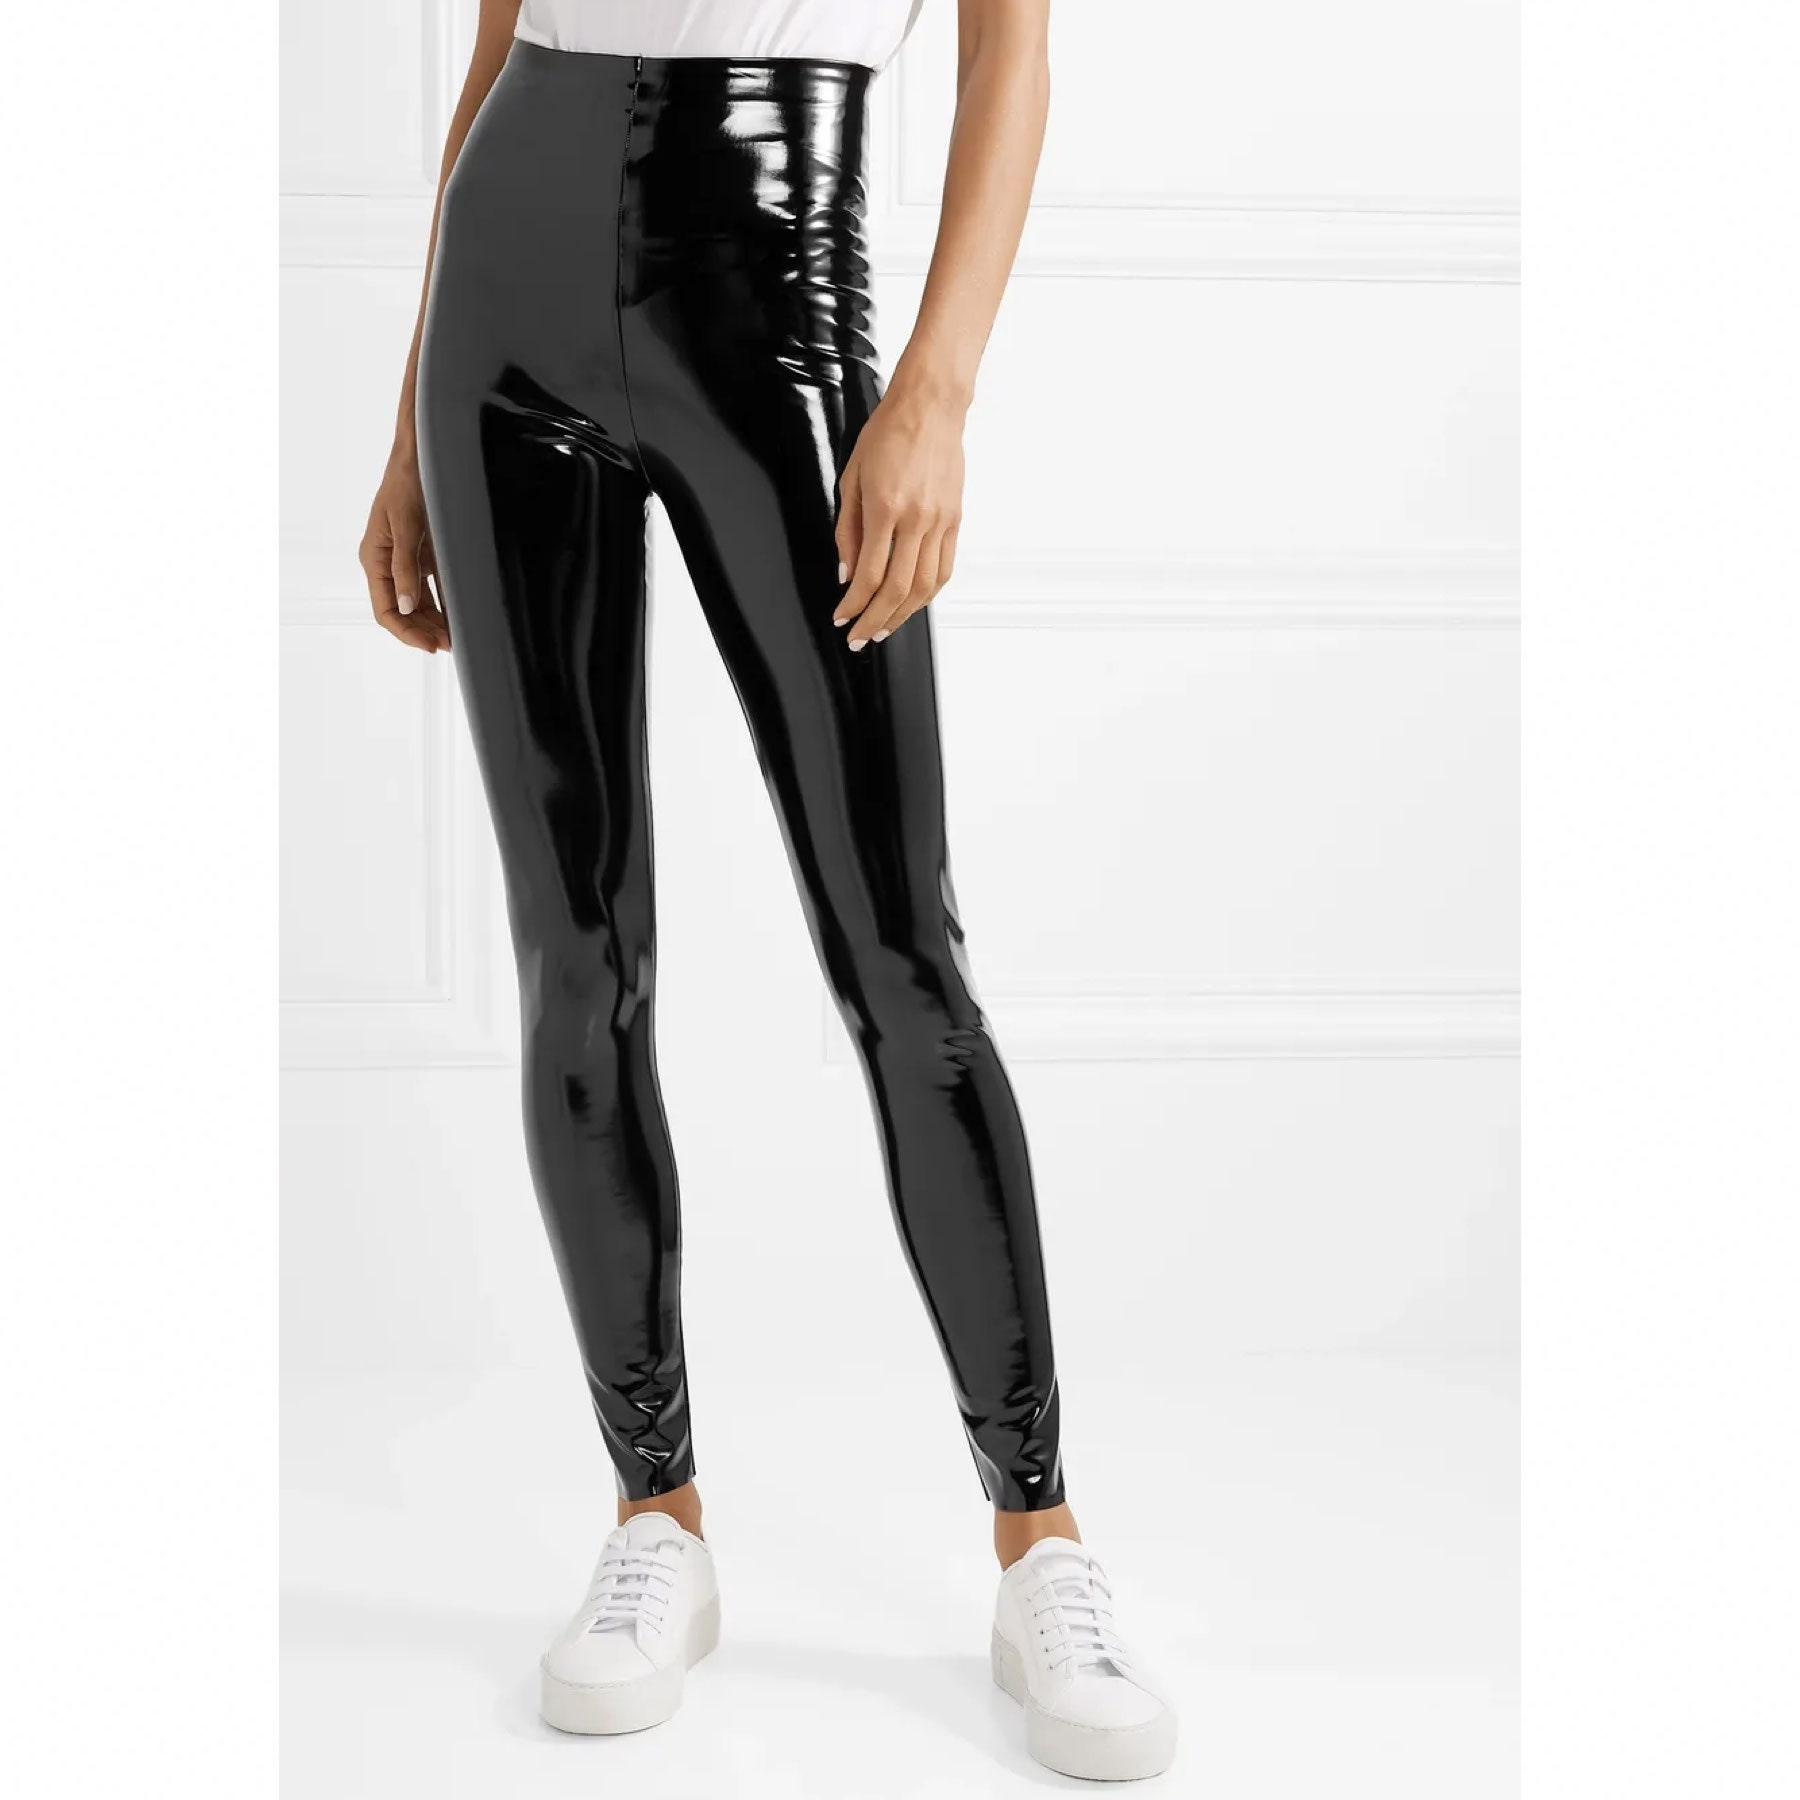 model wearing high-waisted patent leather leggings